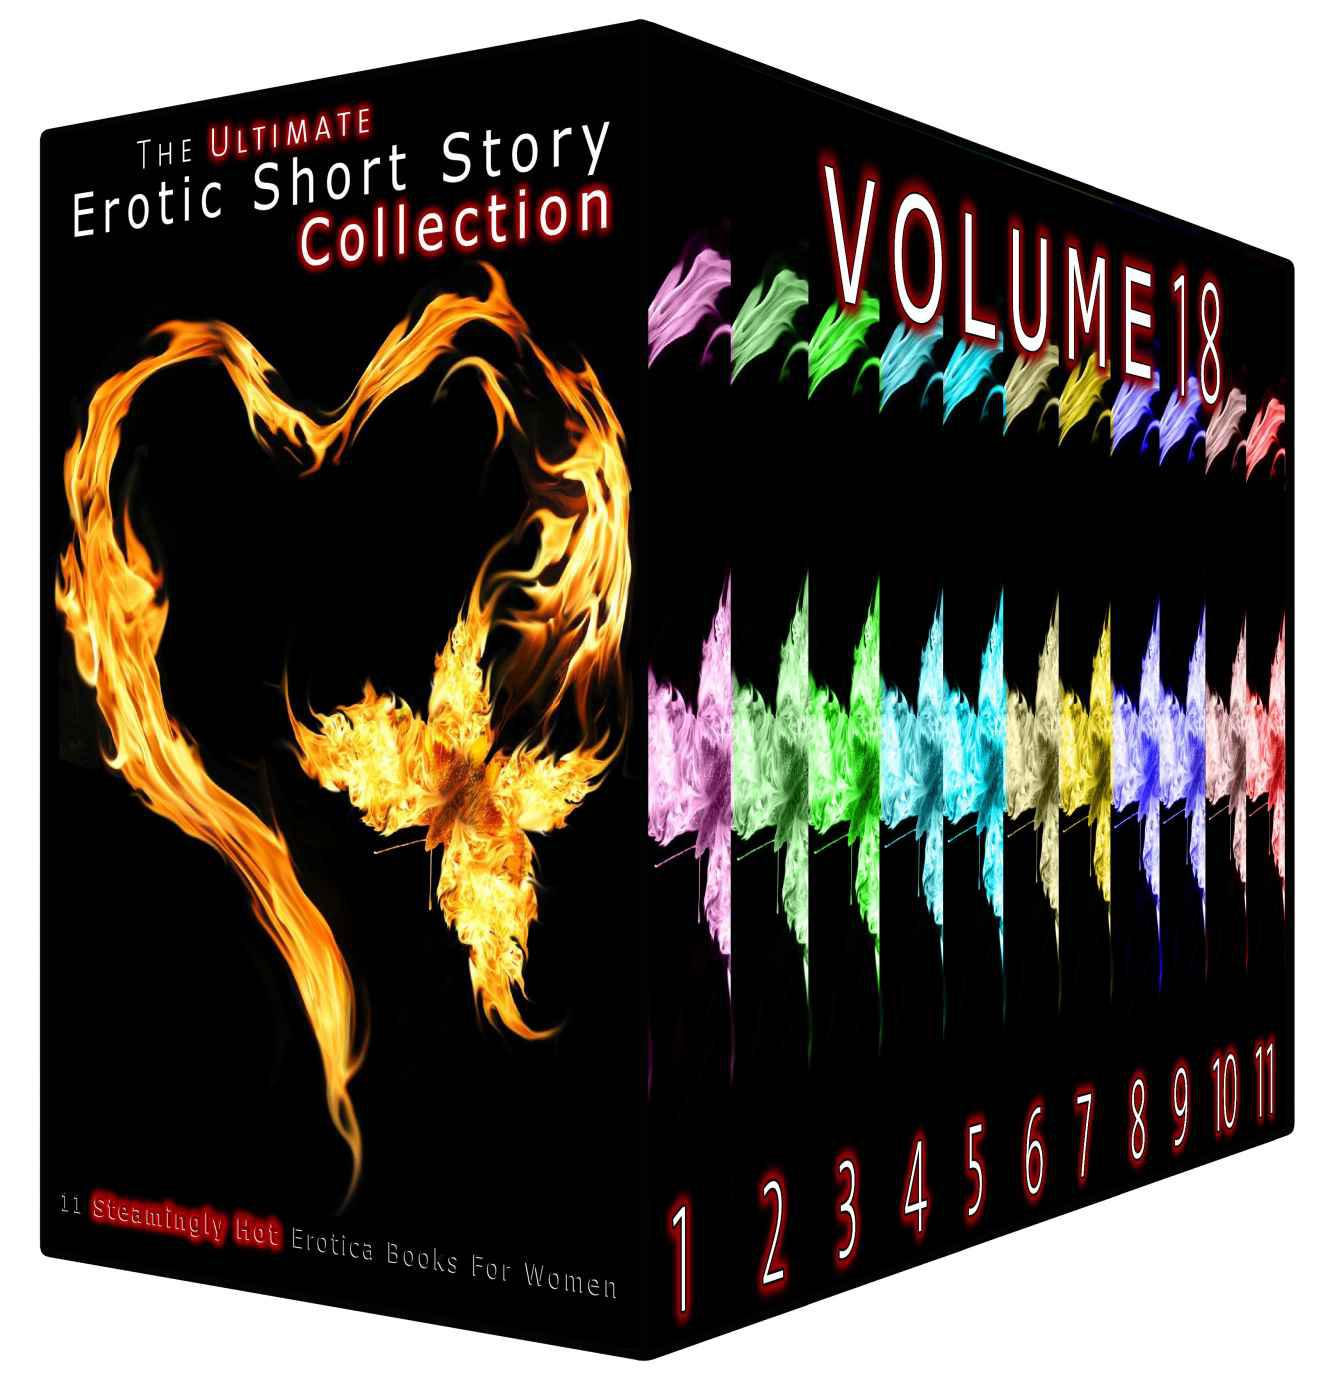 The Ultimate Erotic Short Story Collection 18: 11 Steamingly Hot Erotica Books For Women